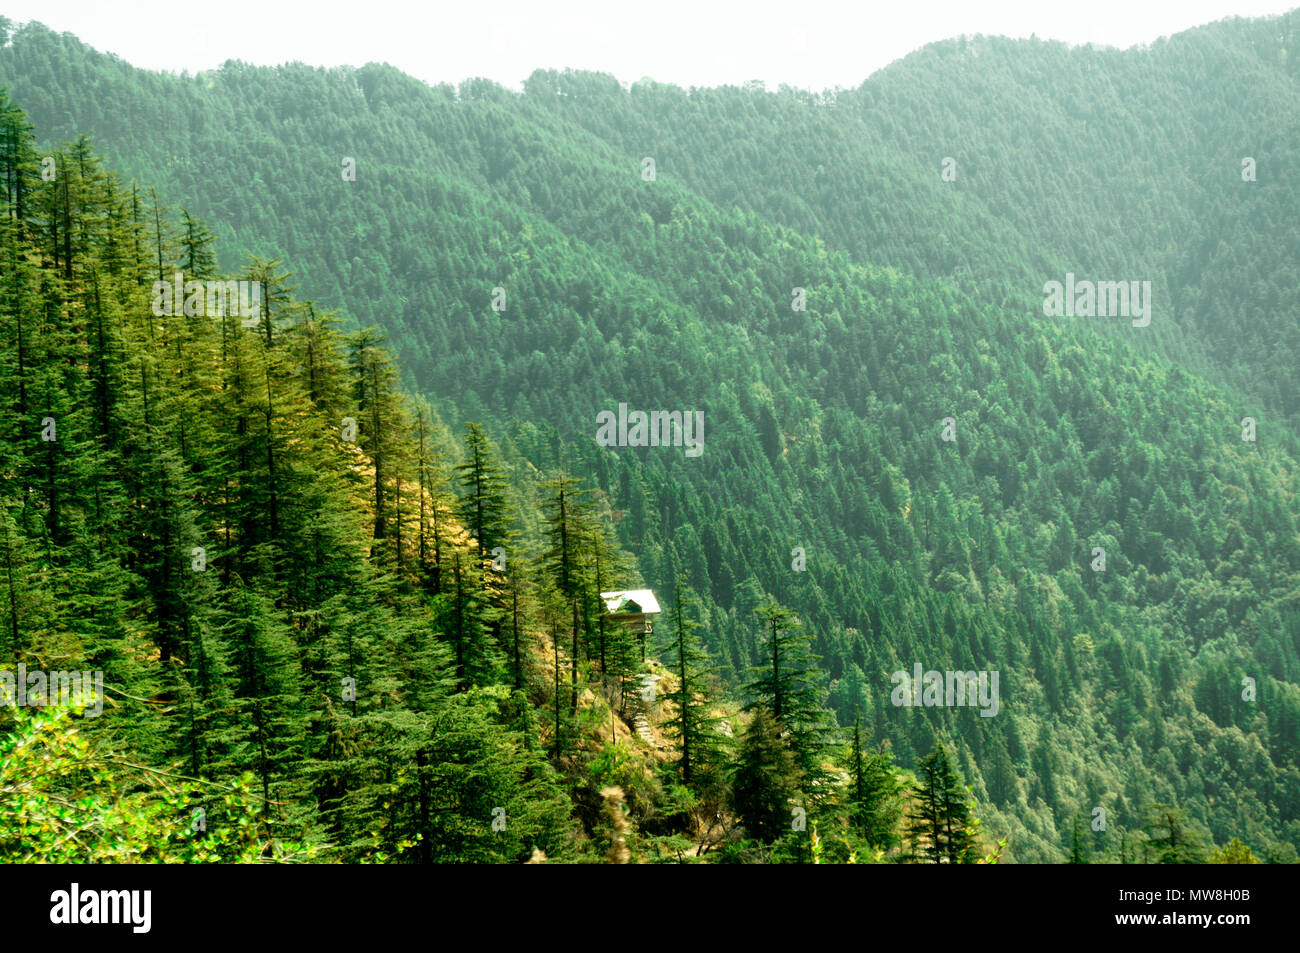 Himalayan range covered with trees fading off into the distance and covered with pine trees. Himachal pradesh has many such sights which makes it a tourist favorite for summer vacations - Stock Image